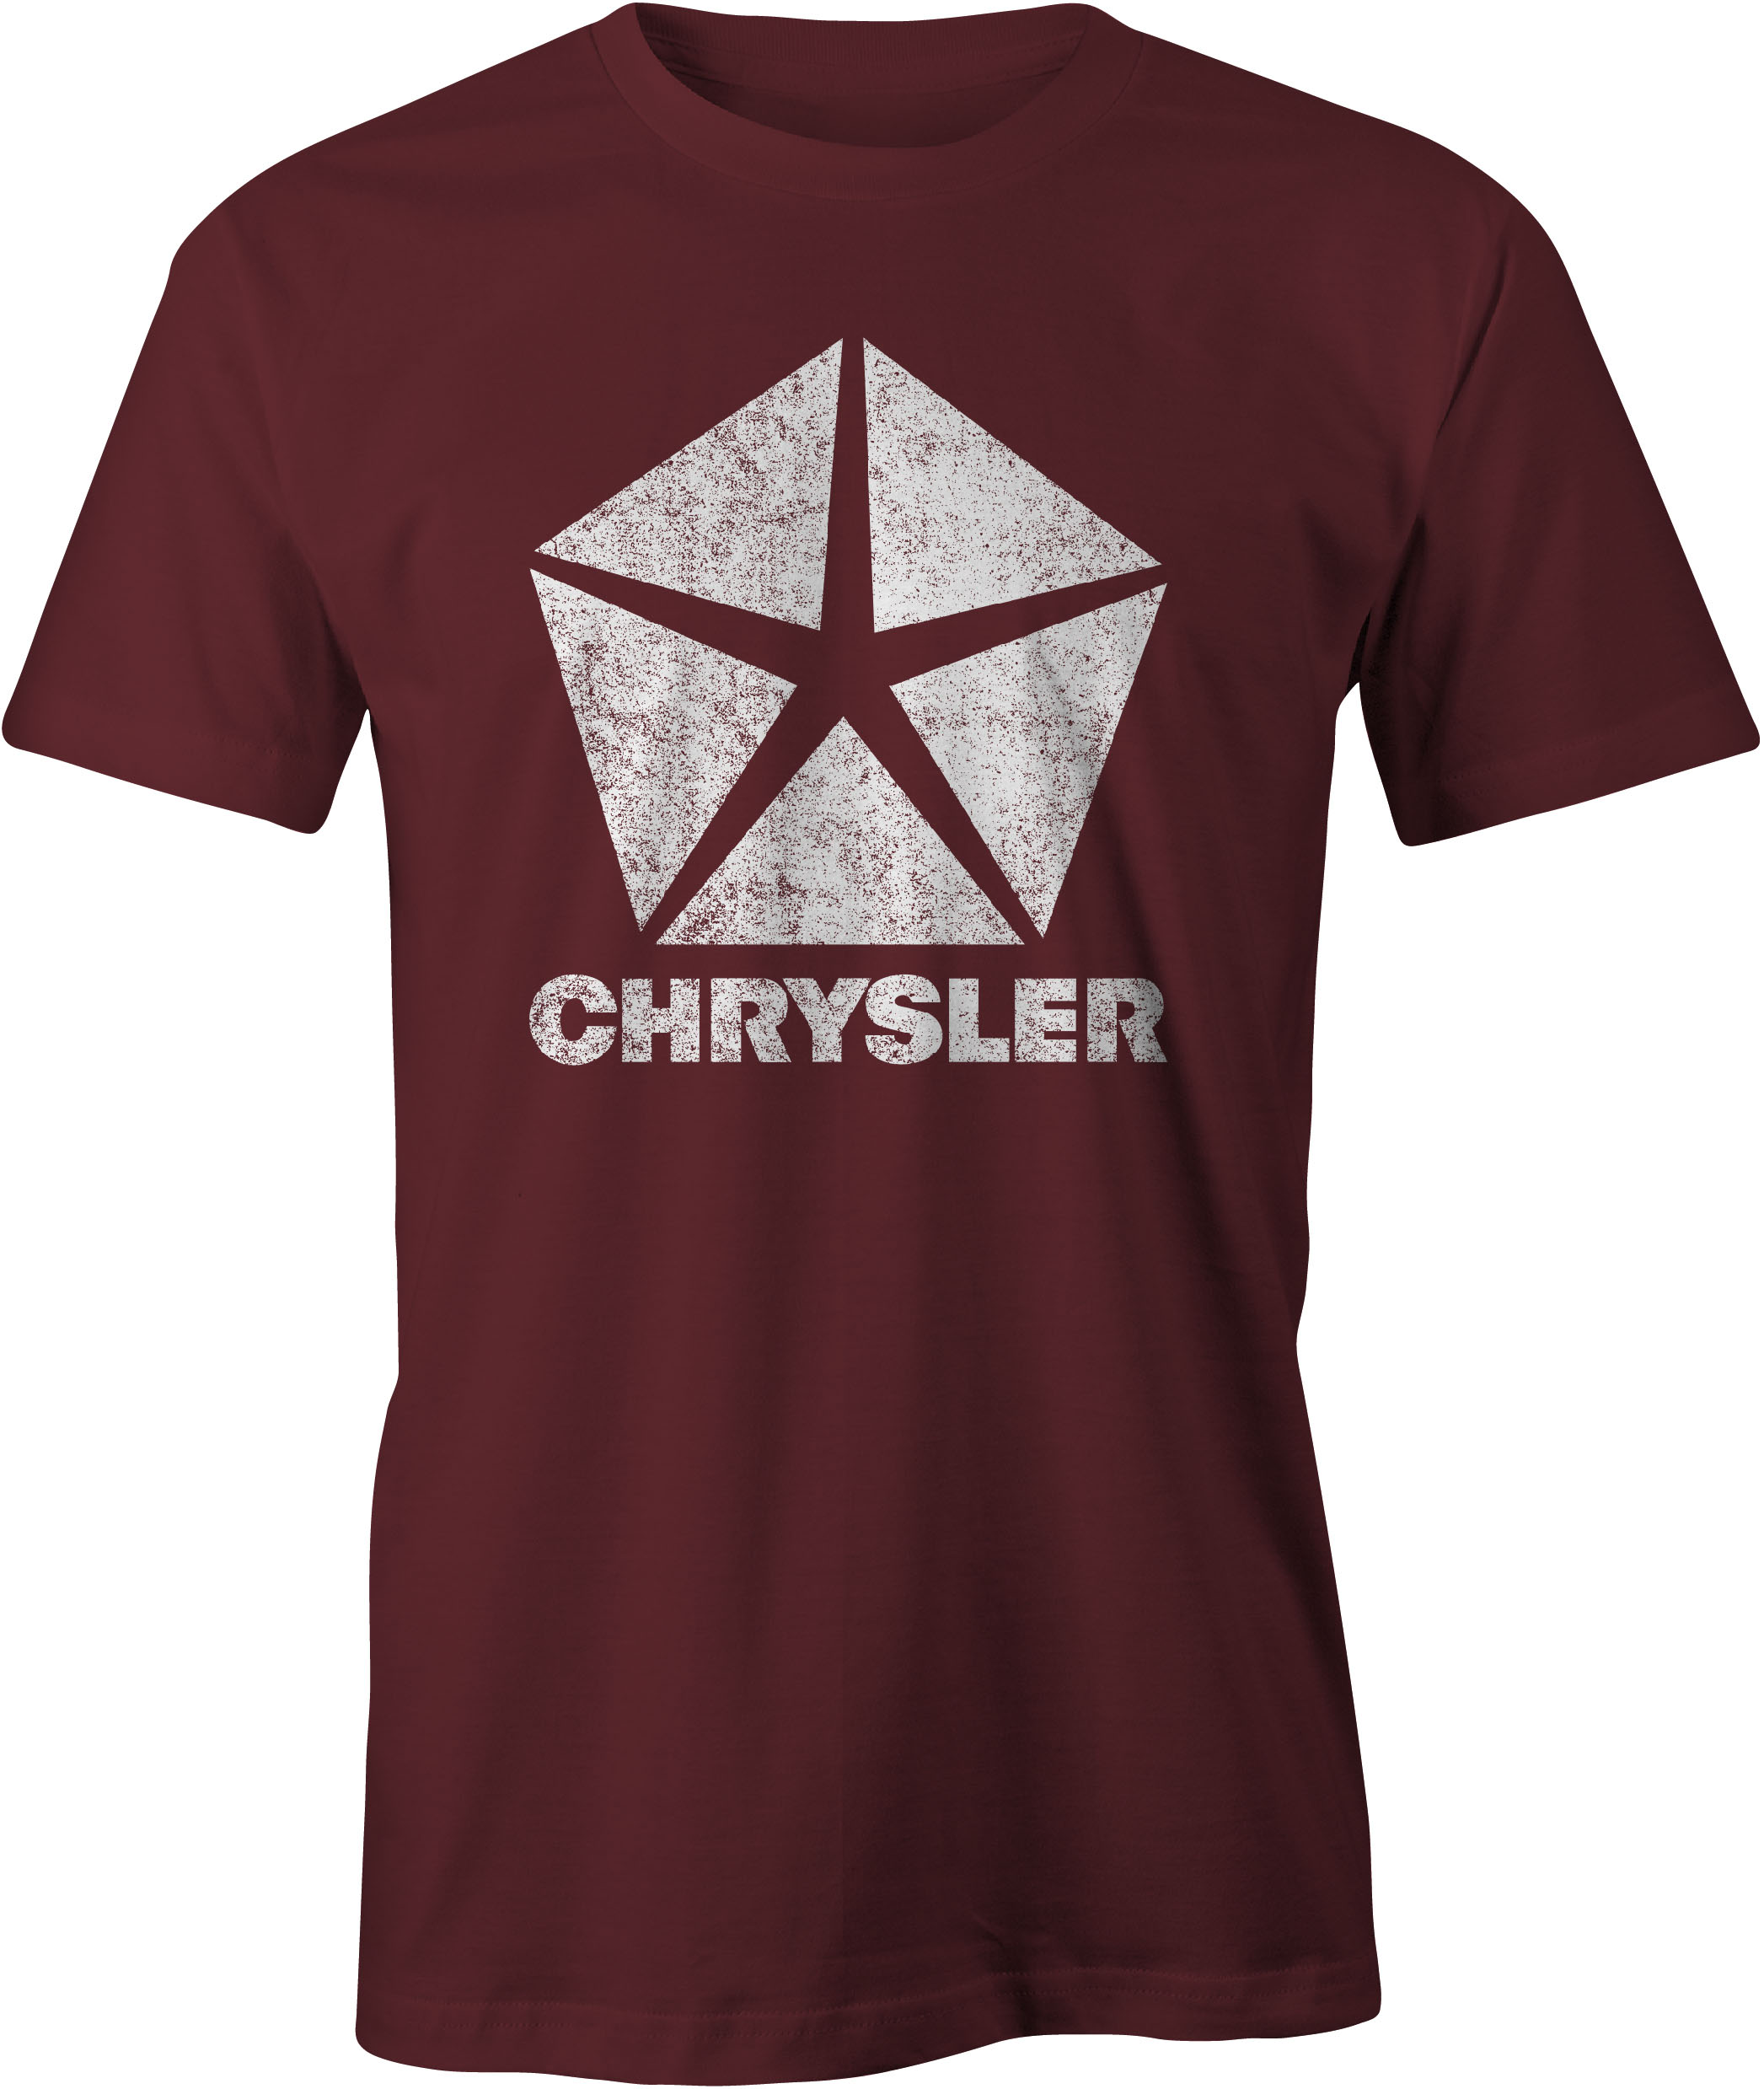 Chrysler Pentastar Logo T Shirt Maroon